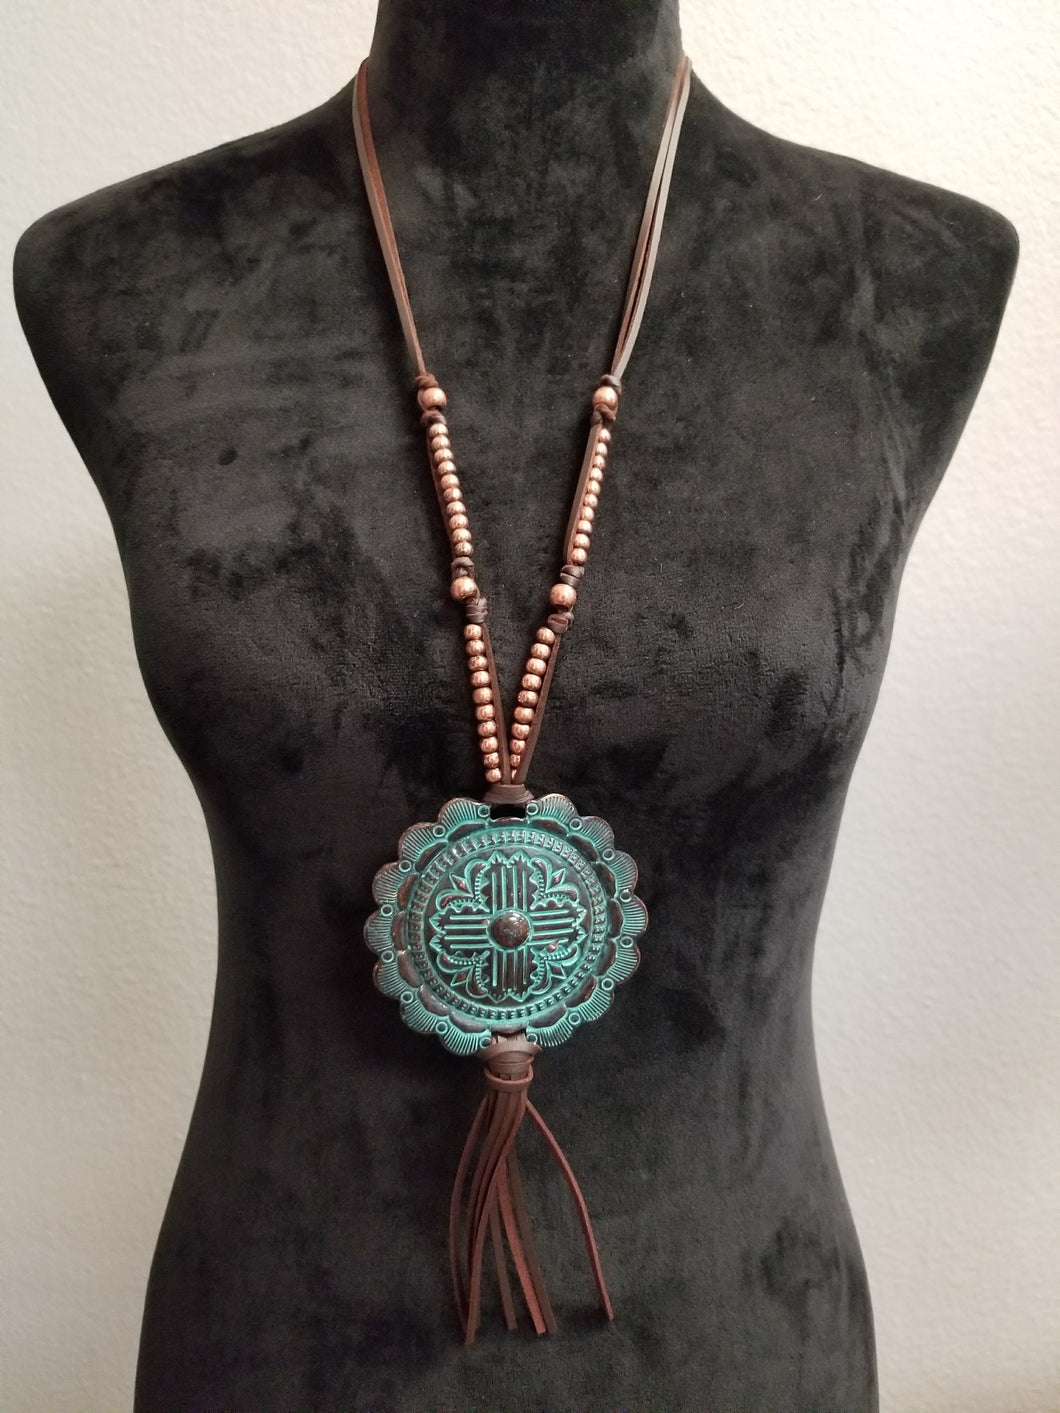 Beaded Rope Chain w/Turquoise Medallion Necklace